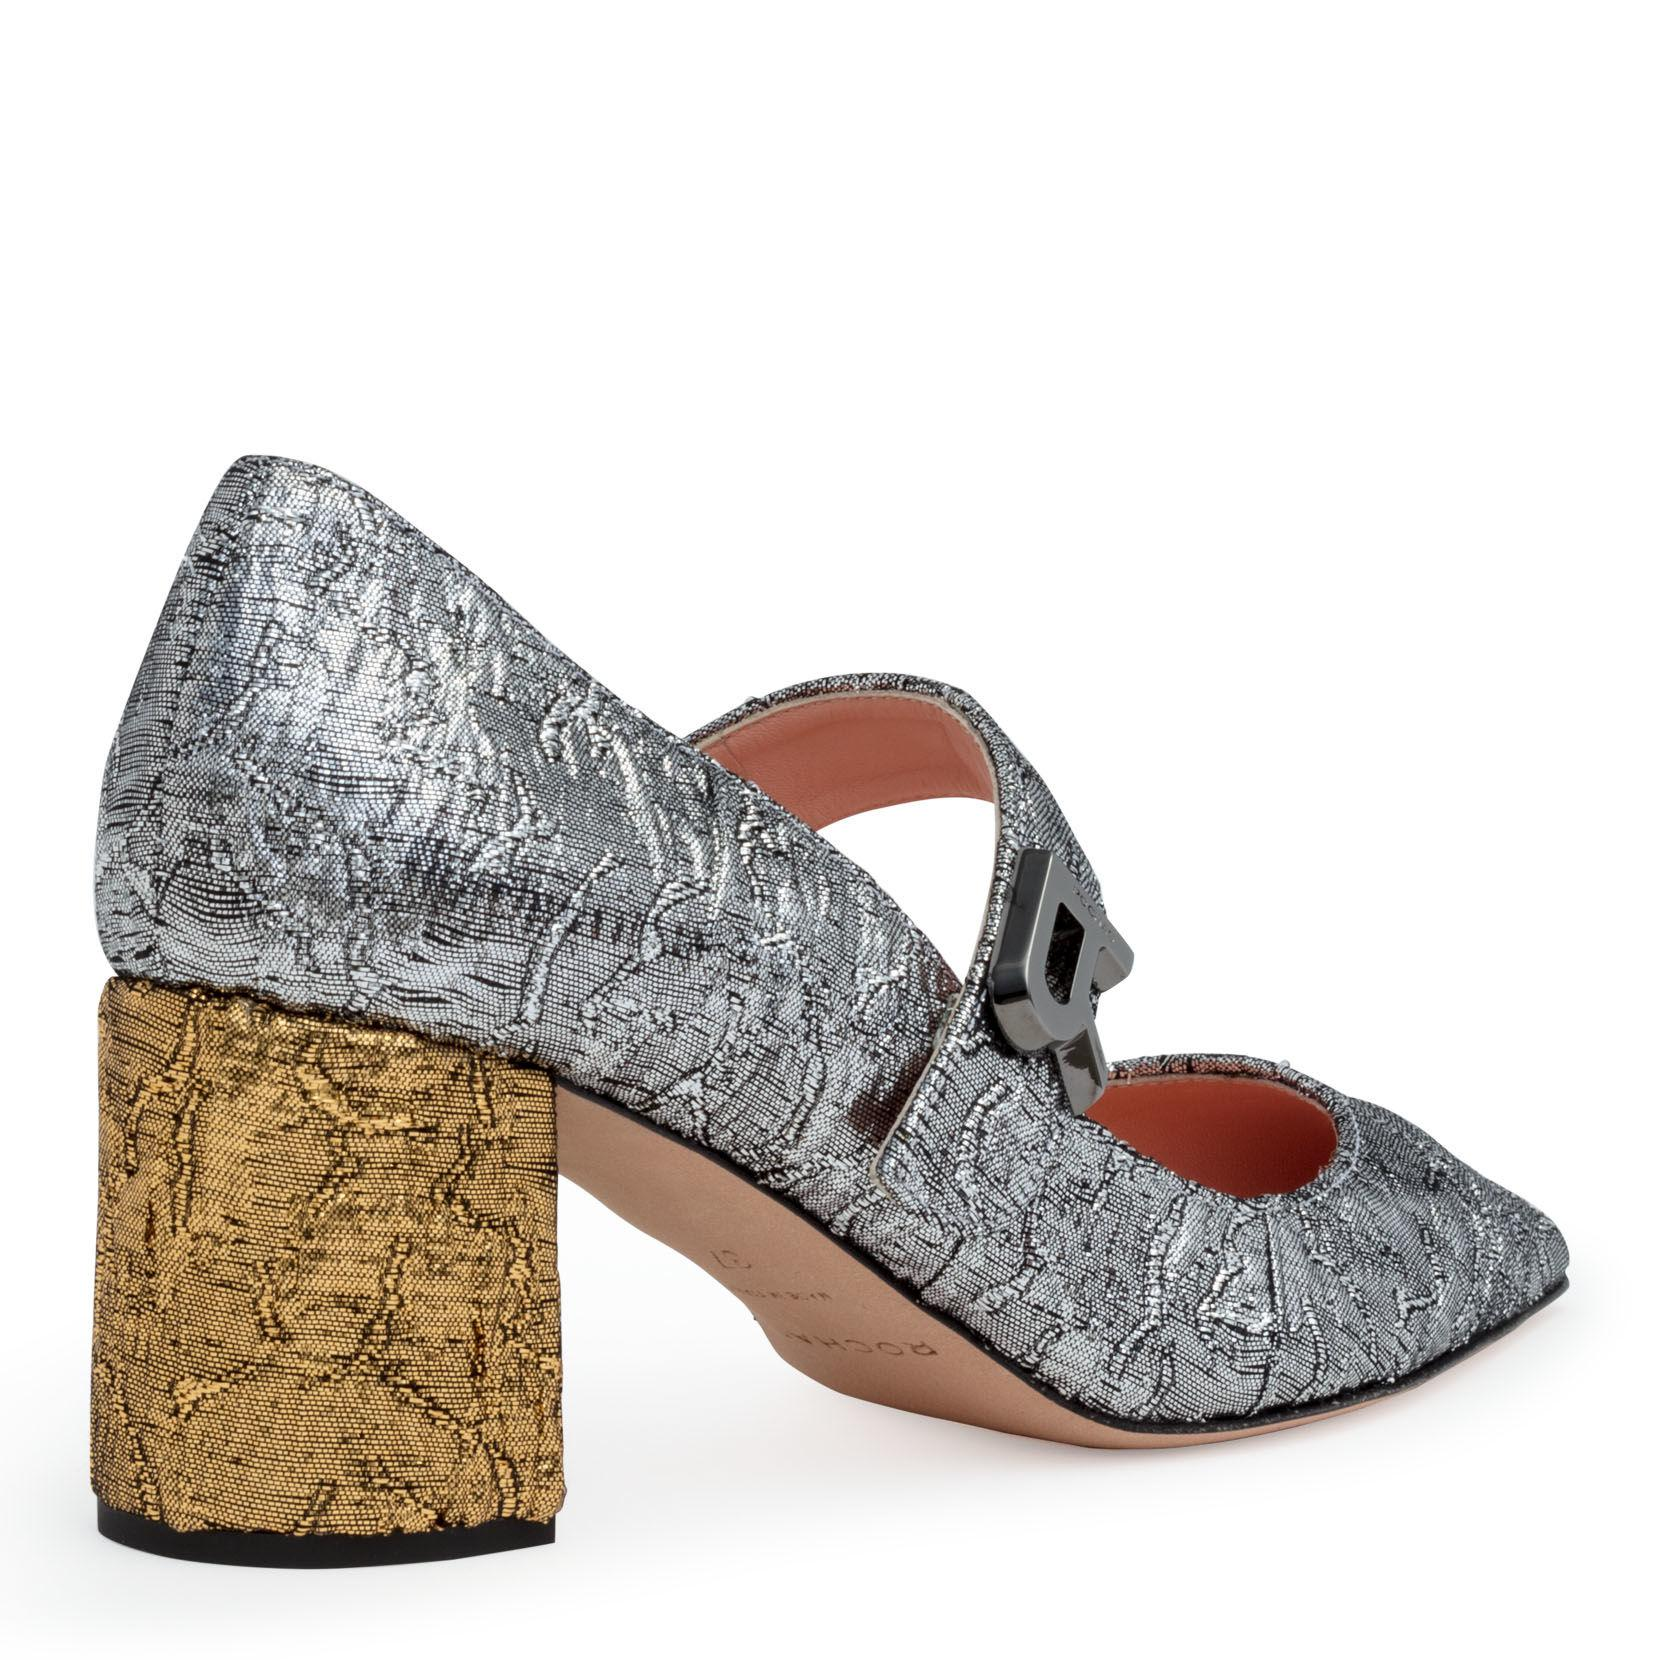 2b6390d090f Rochas - Multicolor Silver Brocade 60 Pointed Pumps - Lyst. View fullscreen